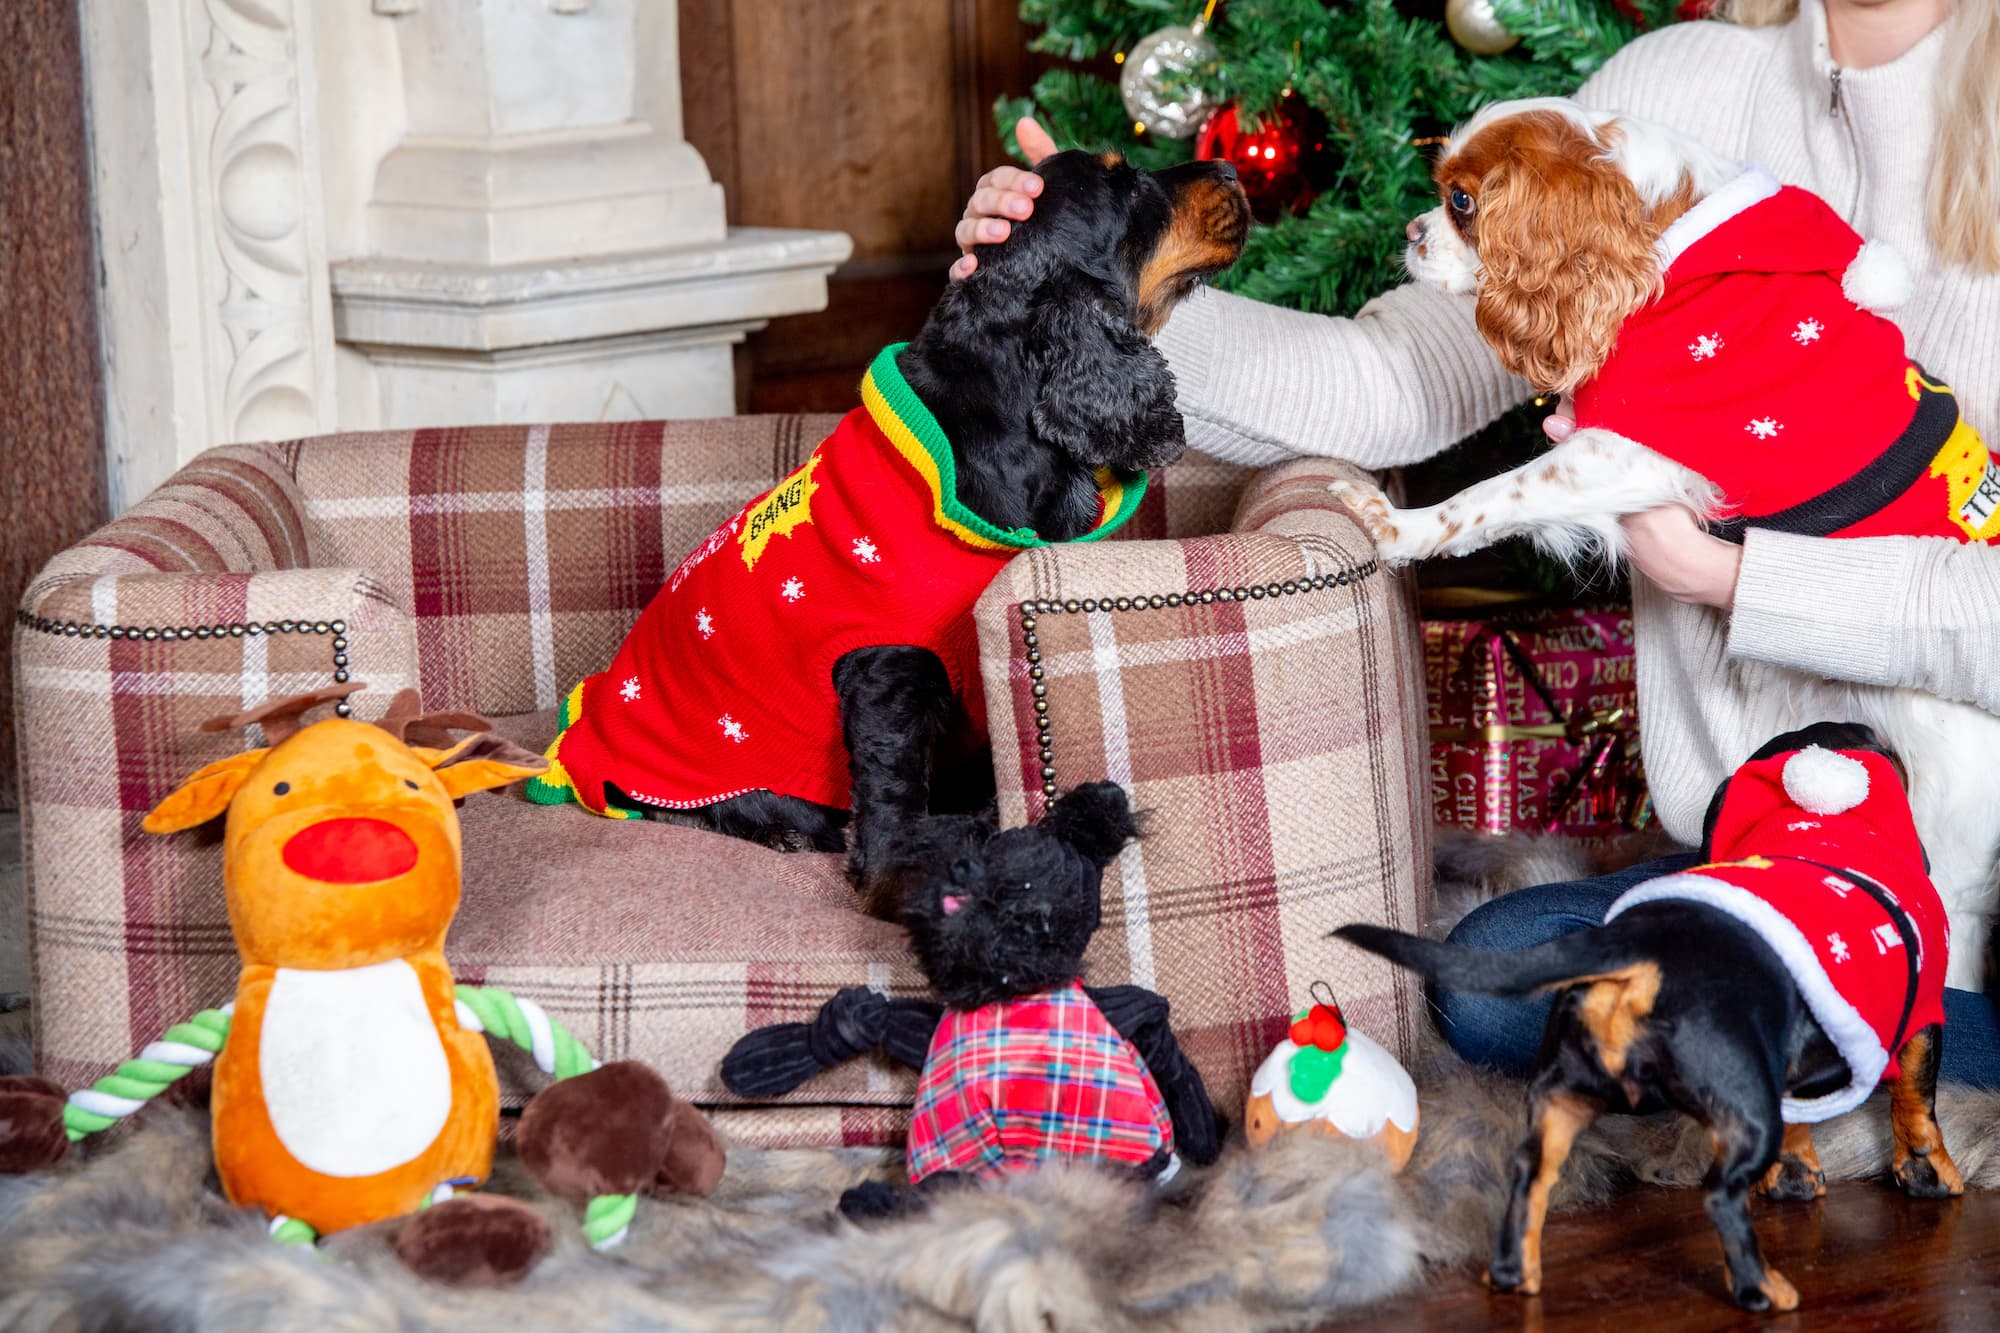 Dogs dressed in Christmas jumpers sit around the Christmas tree with their owner